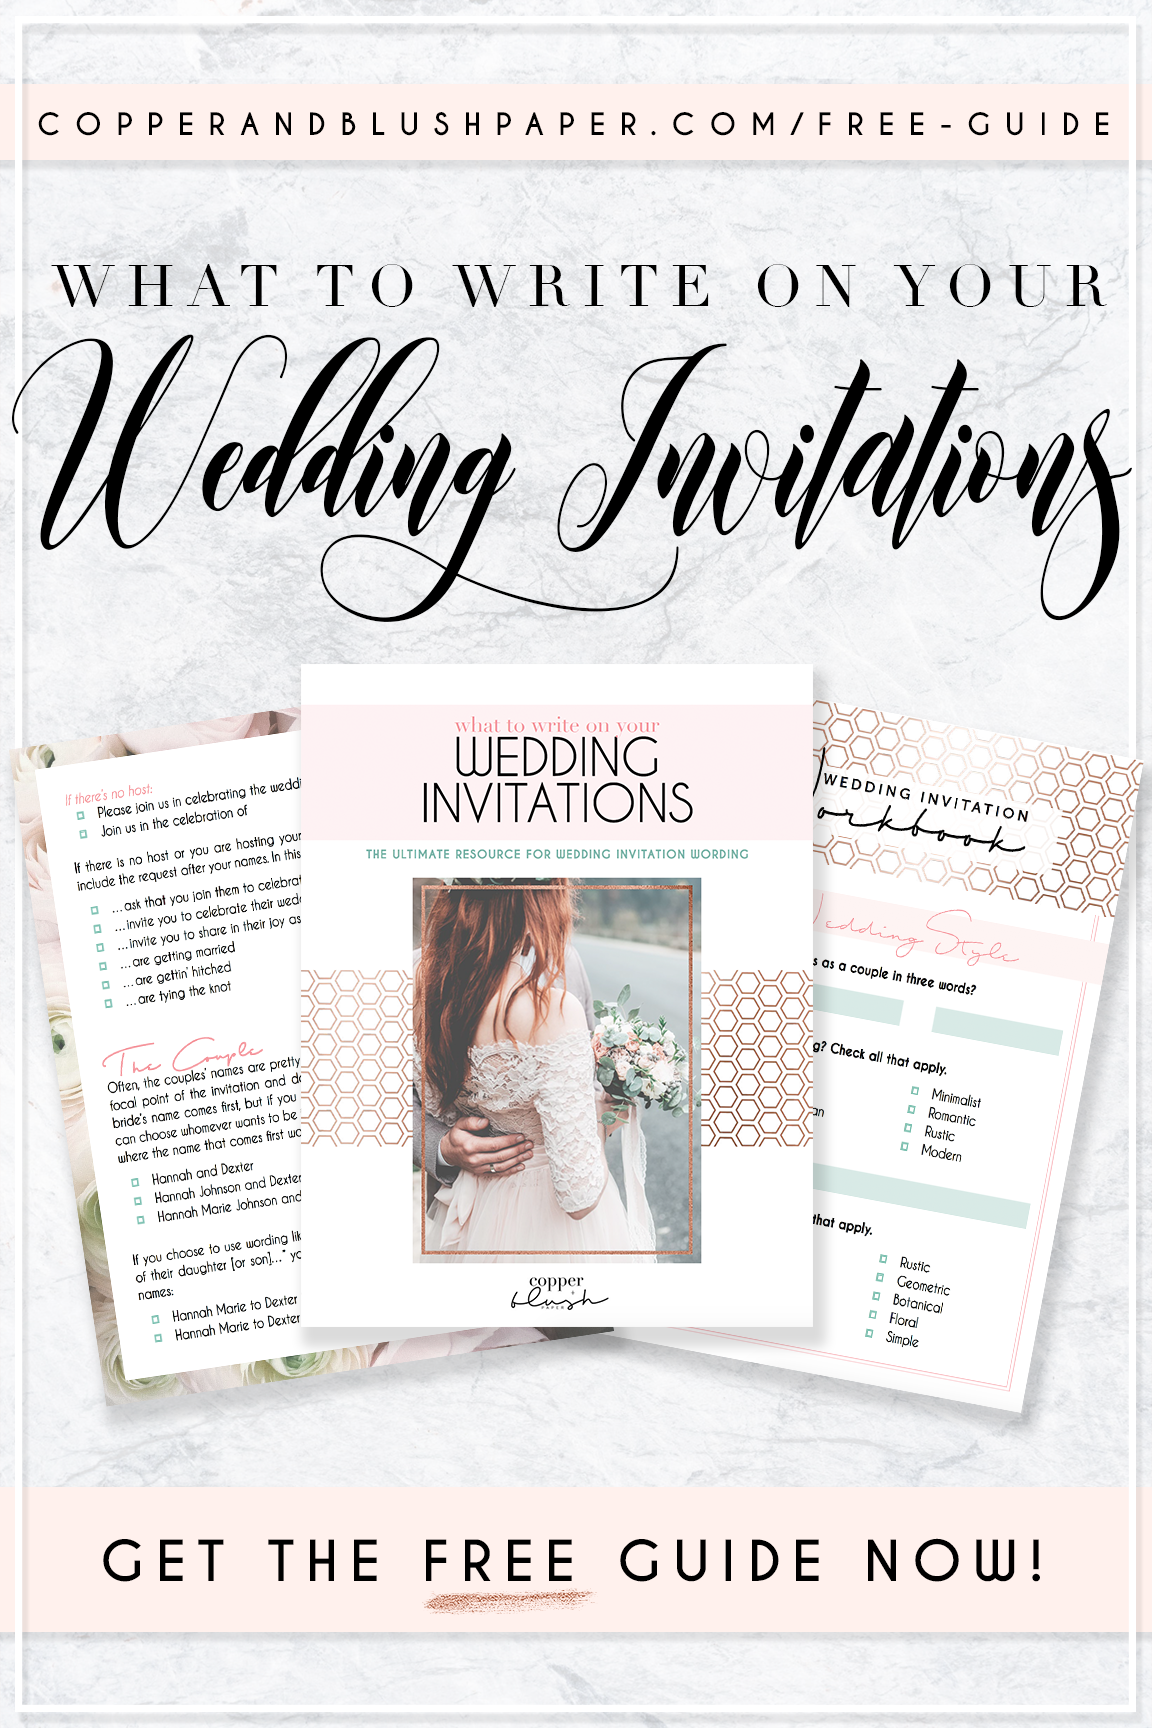 Your wedding invitation wording tells your guests what to